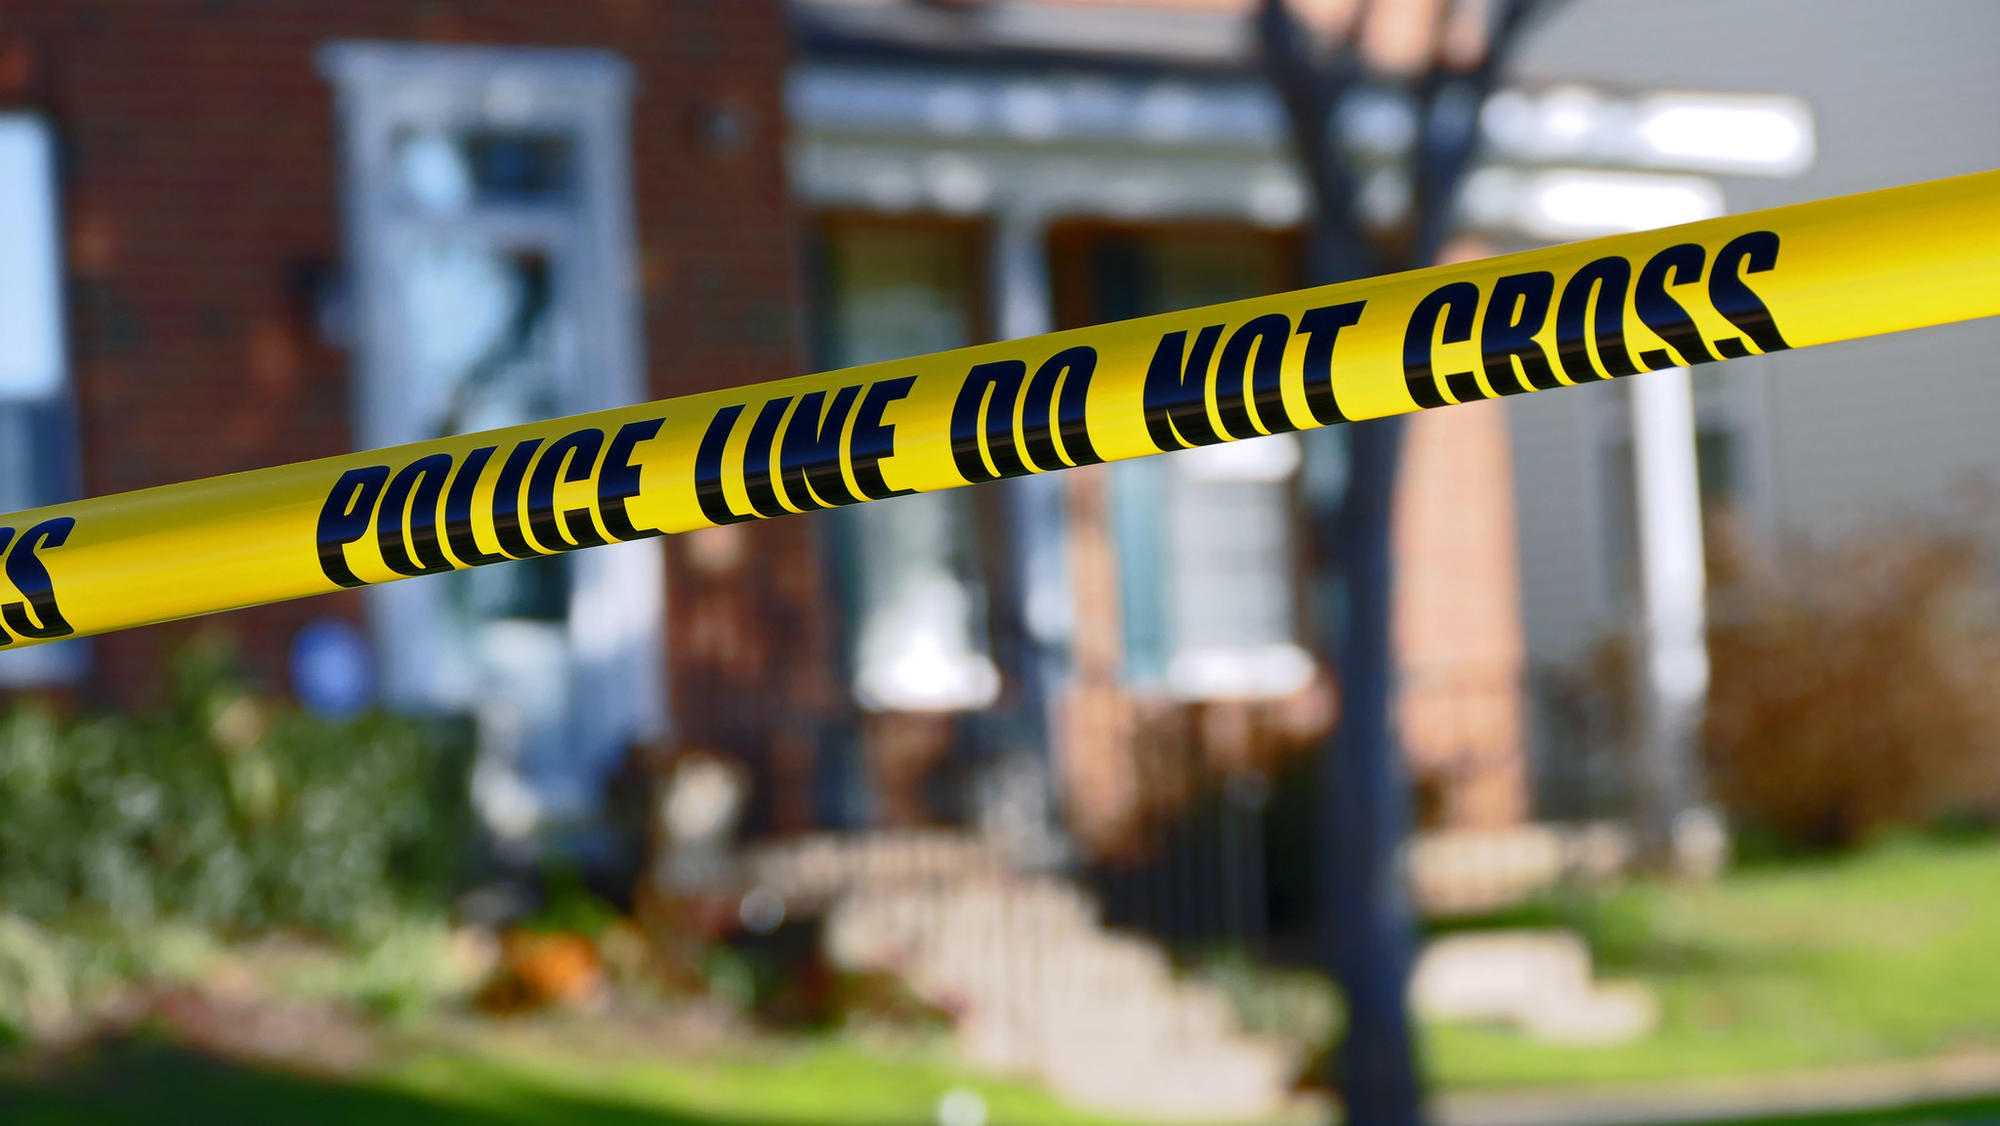 Violent April breaks brief peace in Baltimore, with 29 killings in past three weeks